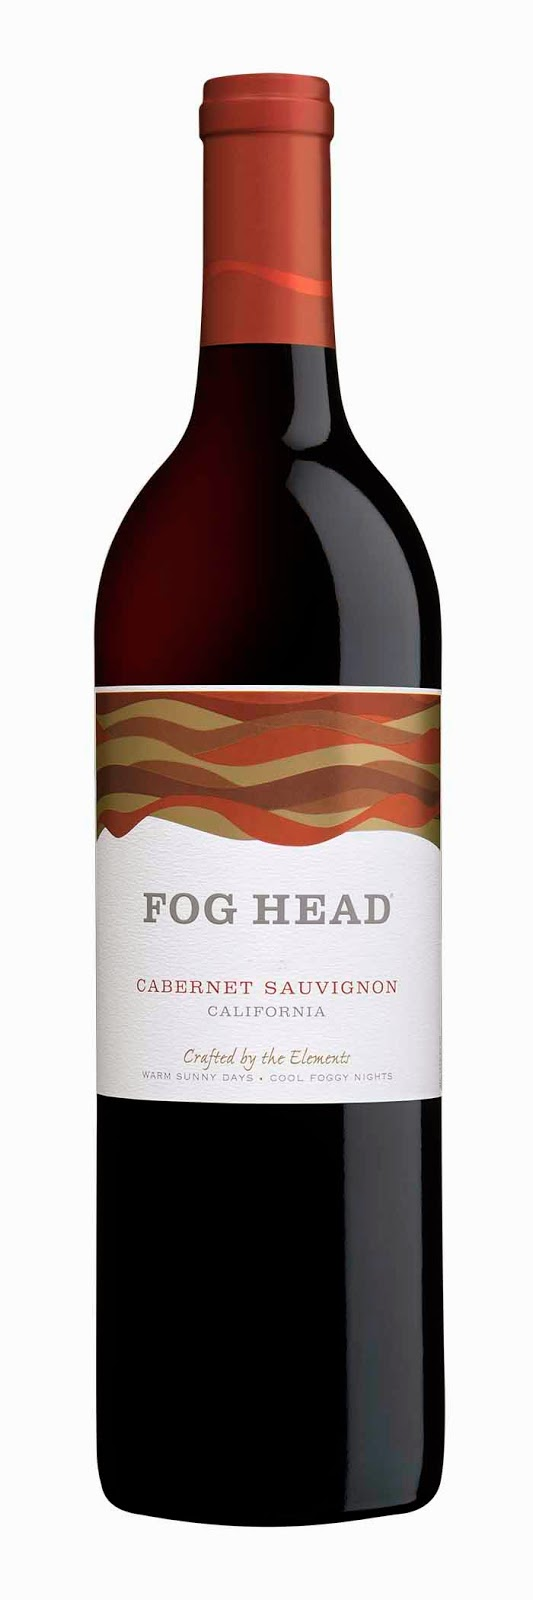 bottle of Fog Head Cabernet Sauvignon 2012 California